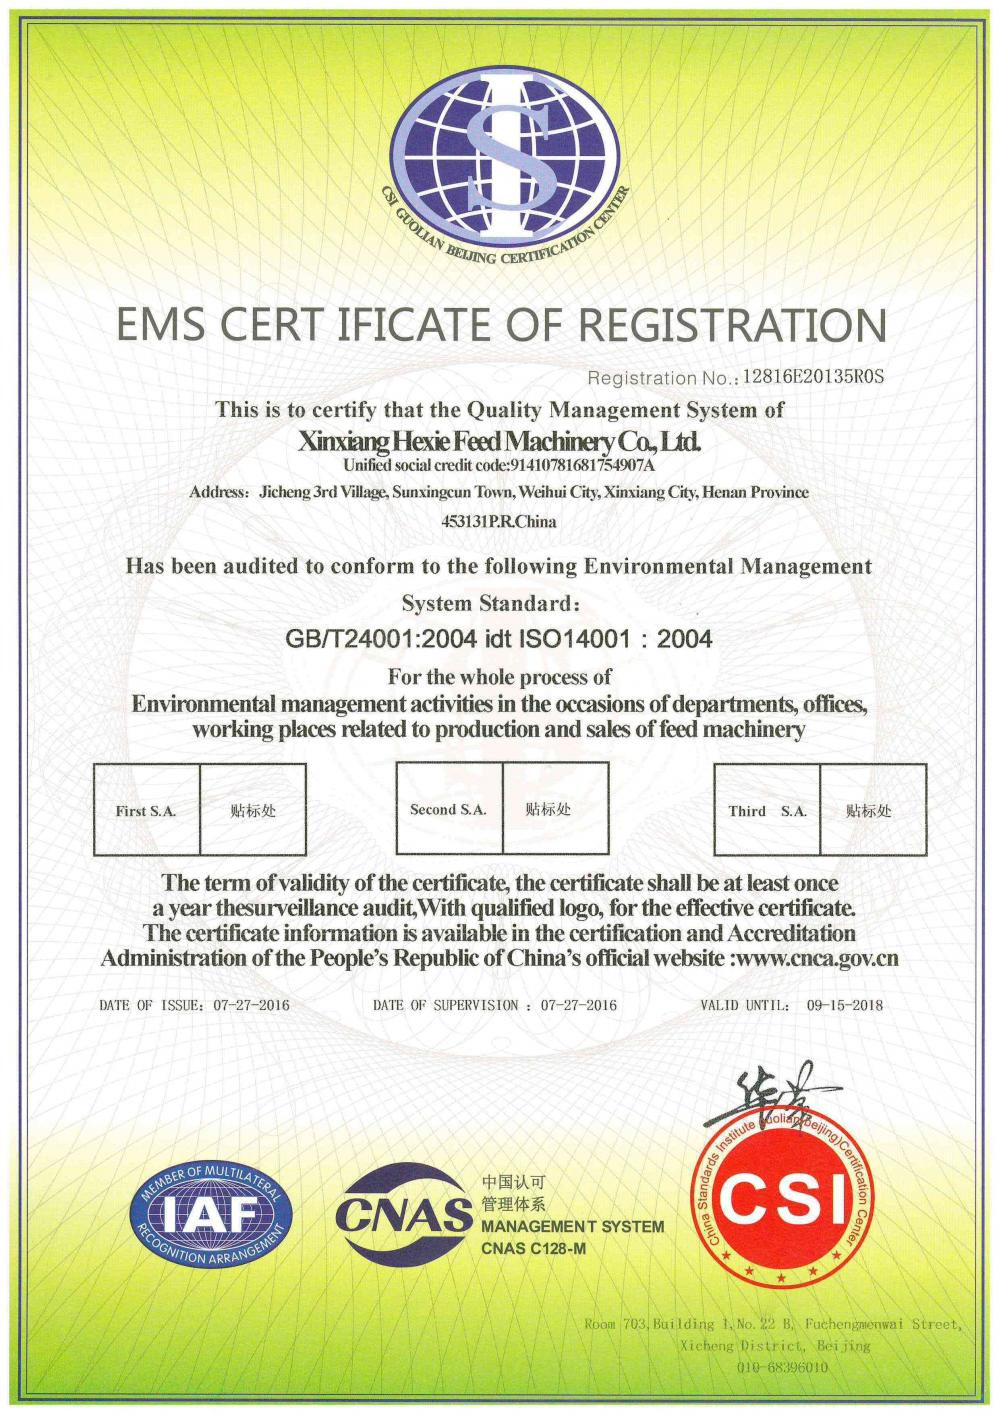 EMS CERT IFICATE OF REGISTRATION